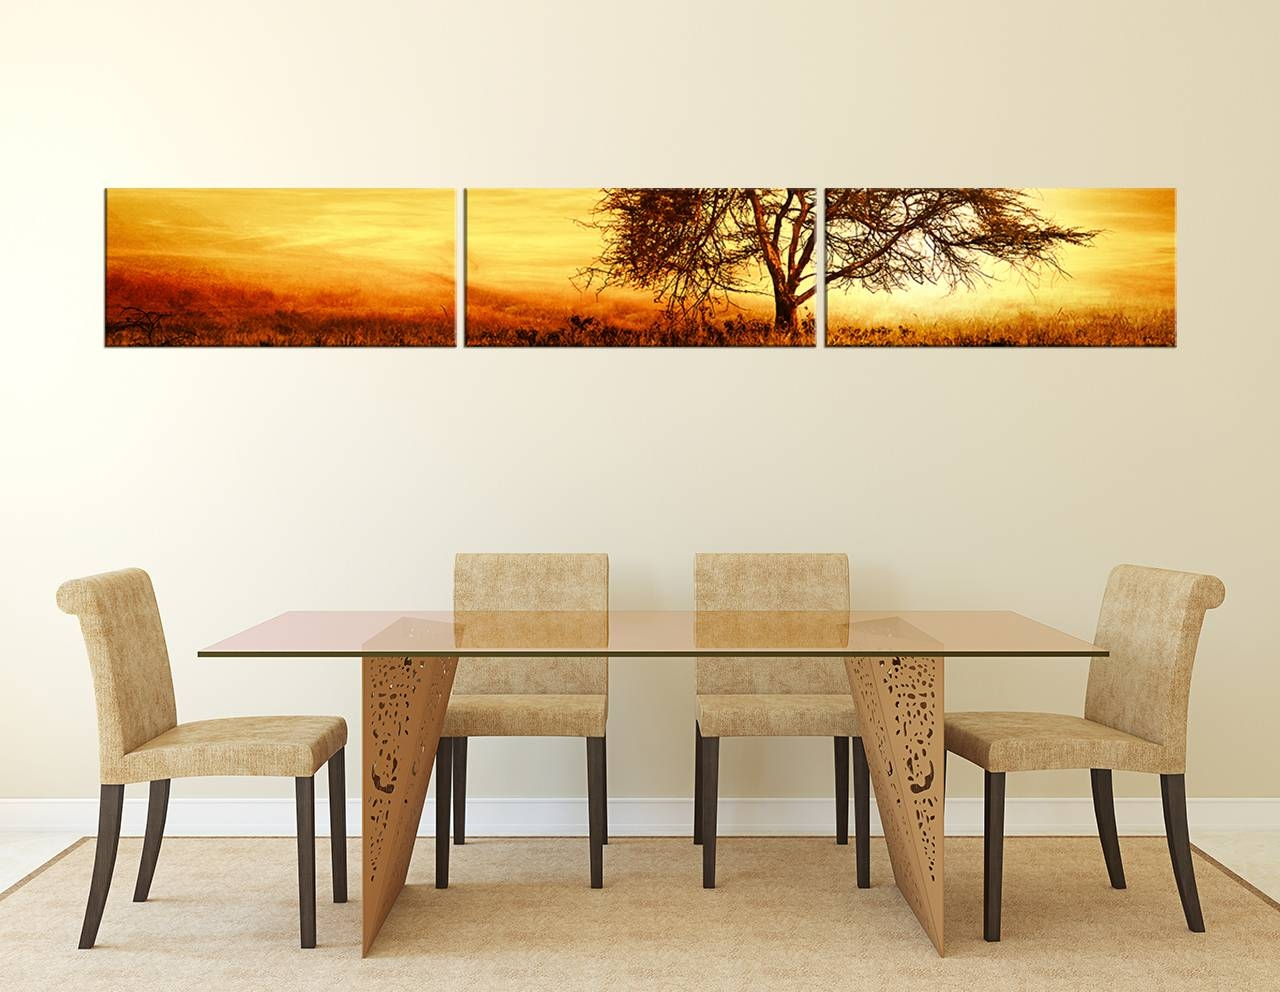 Cool Wall Decor Piece Large Pictures Dining Multi Piece Wall Art In Most Up To Date Multiple Piece Wall Art (View 15 of 20)